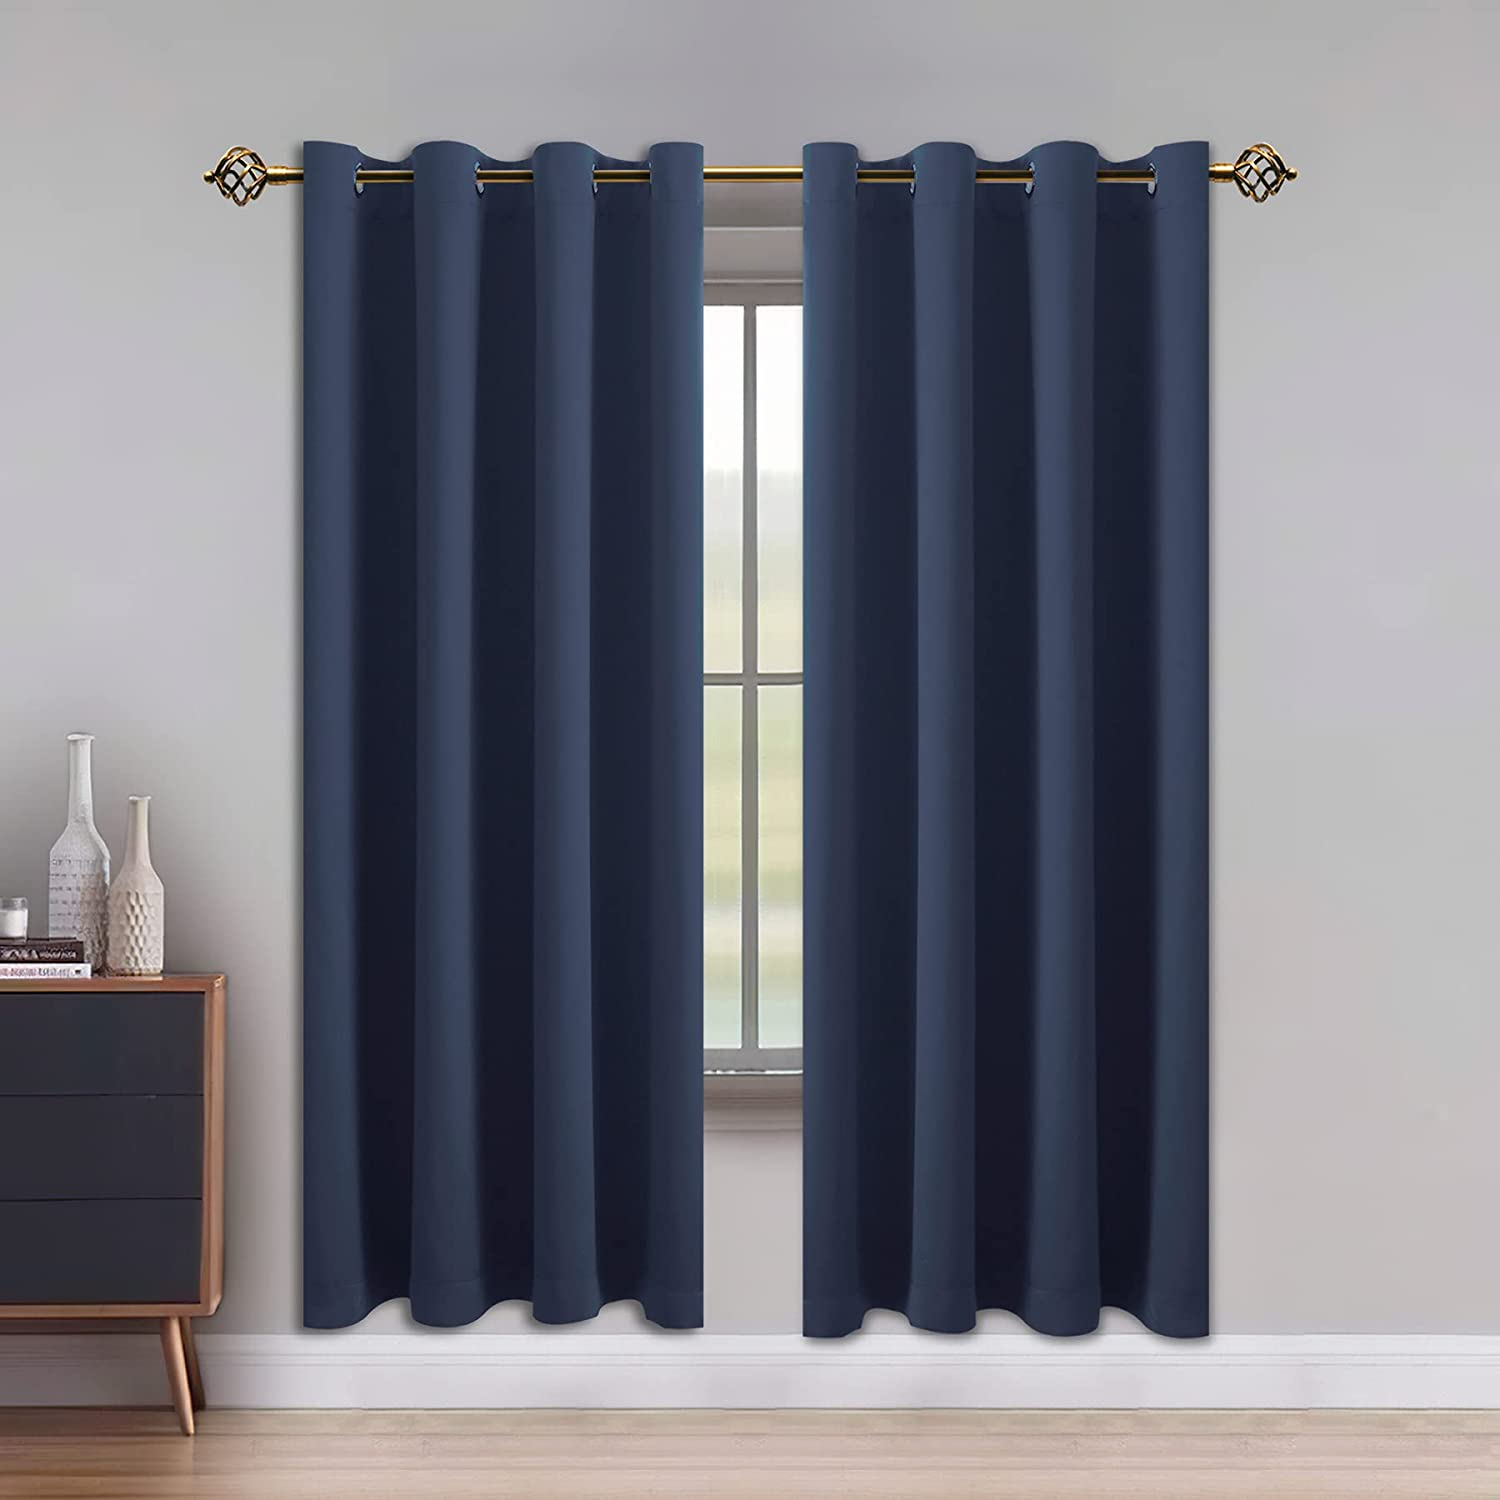 LUSHLEAF Blackout Curtains for Max 58% OFF Insulated Direct store Bedroom Thermal Solid